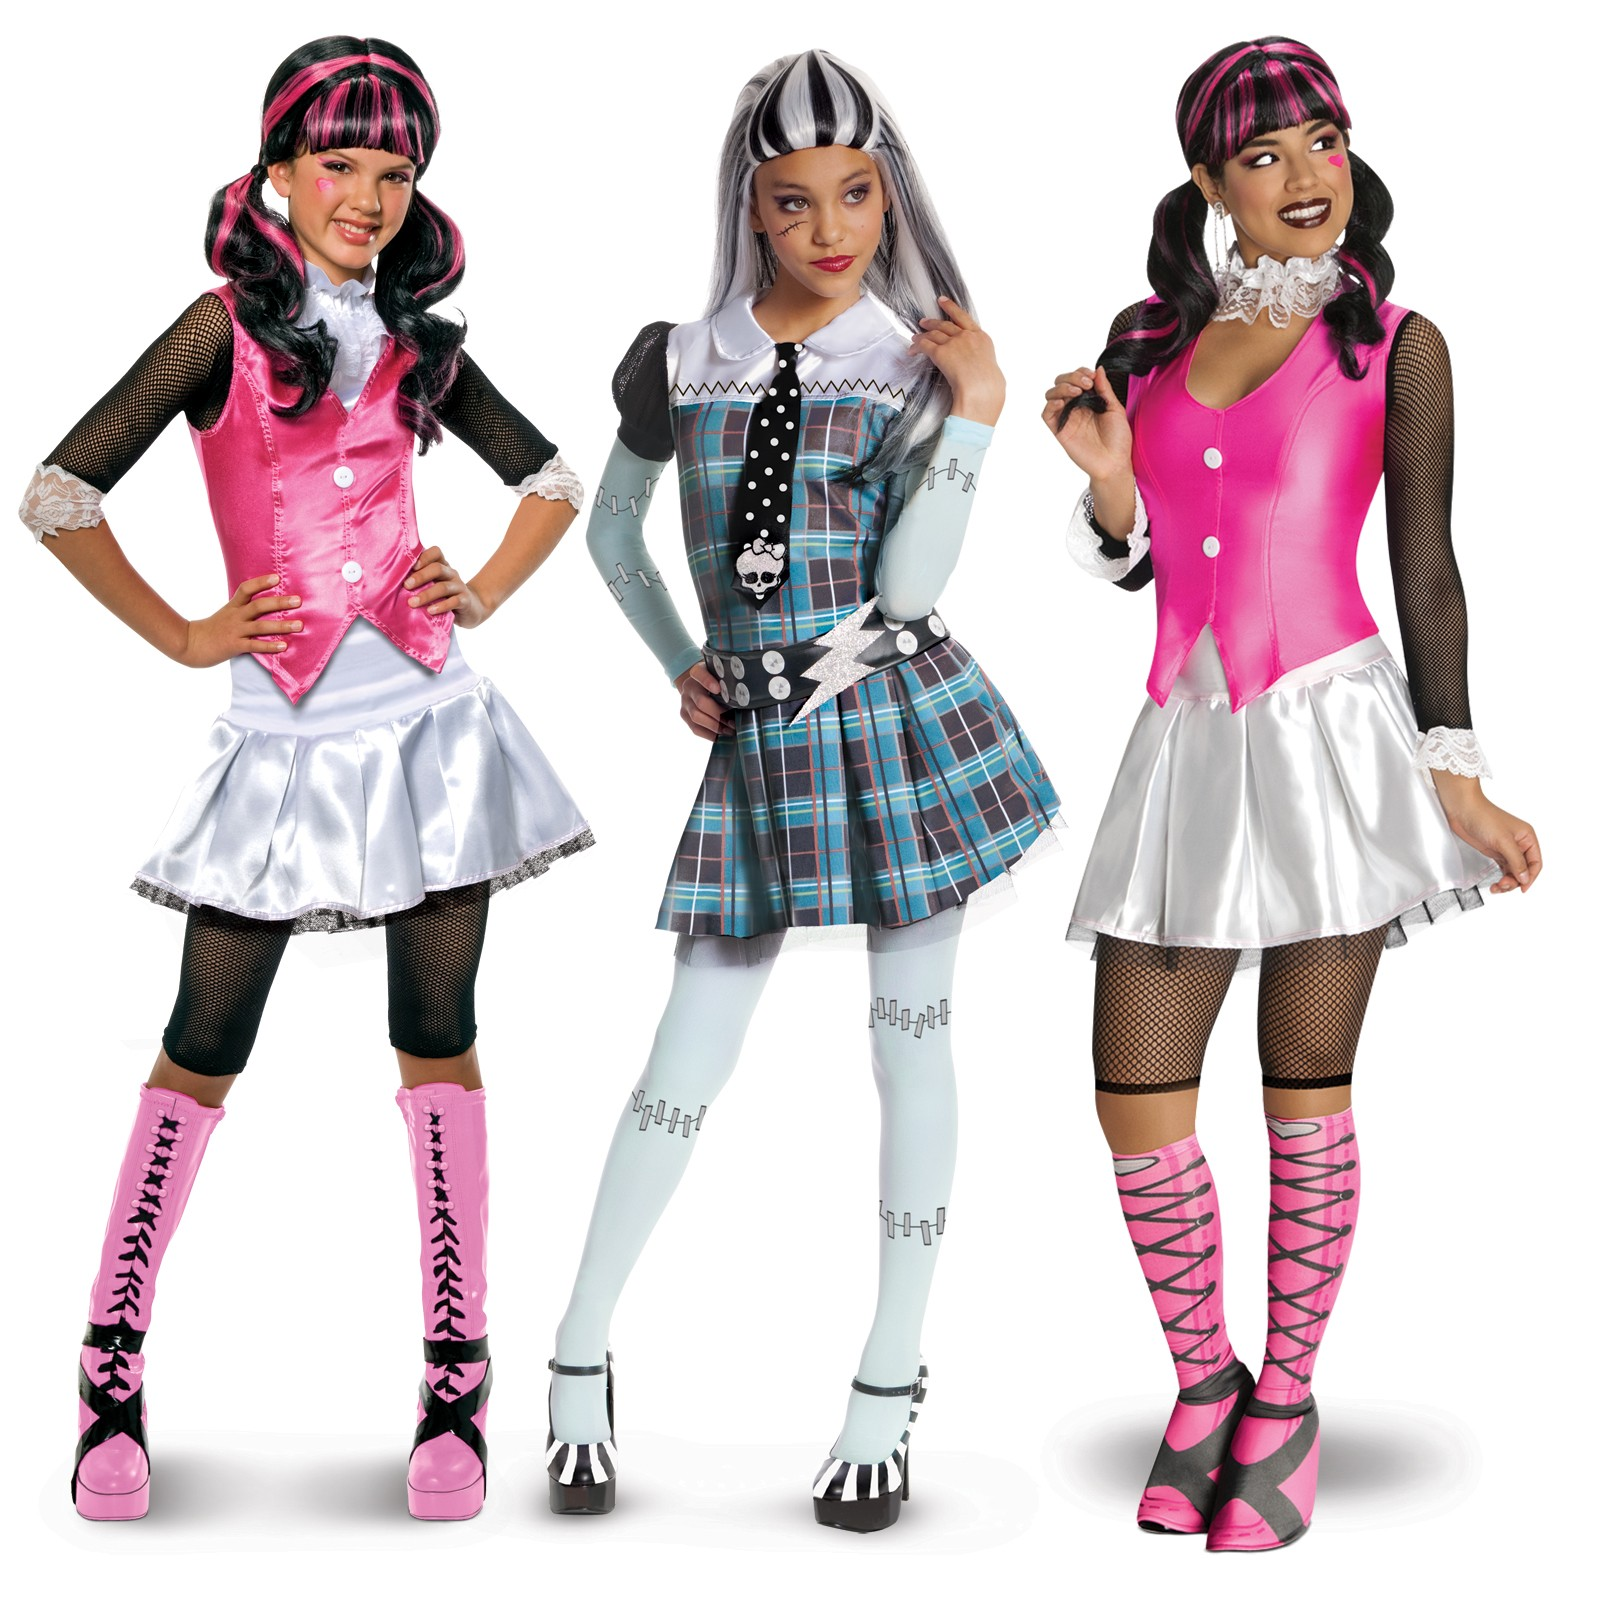 2014 halloween costume ideas for teens and preteens – styles that